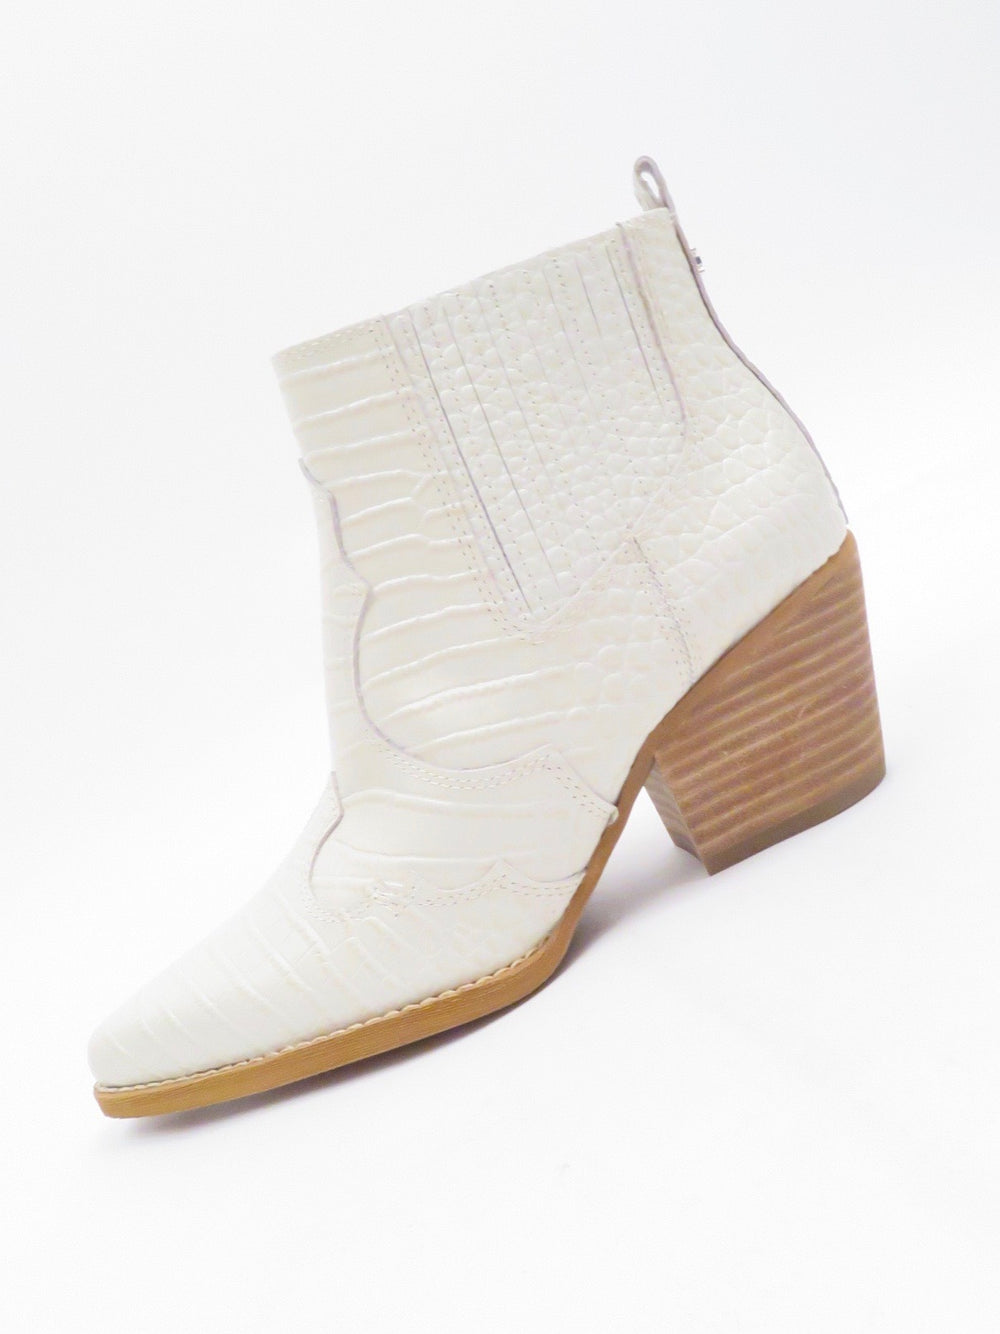 "sam edelman off-white 'winona' patent leather ankle boots. features crocodile-embossed leather and western design elements. pull-on style with hidden elastic side gussets. tapered toe with 2.5"" tan stacked heel."